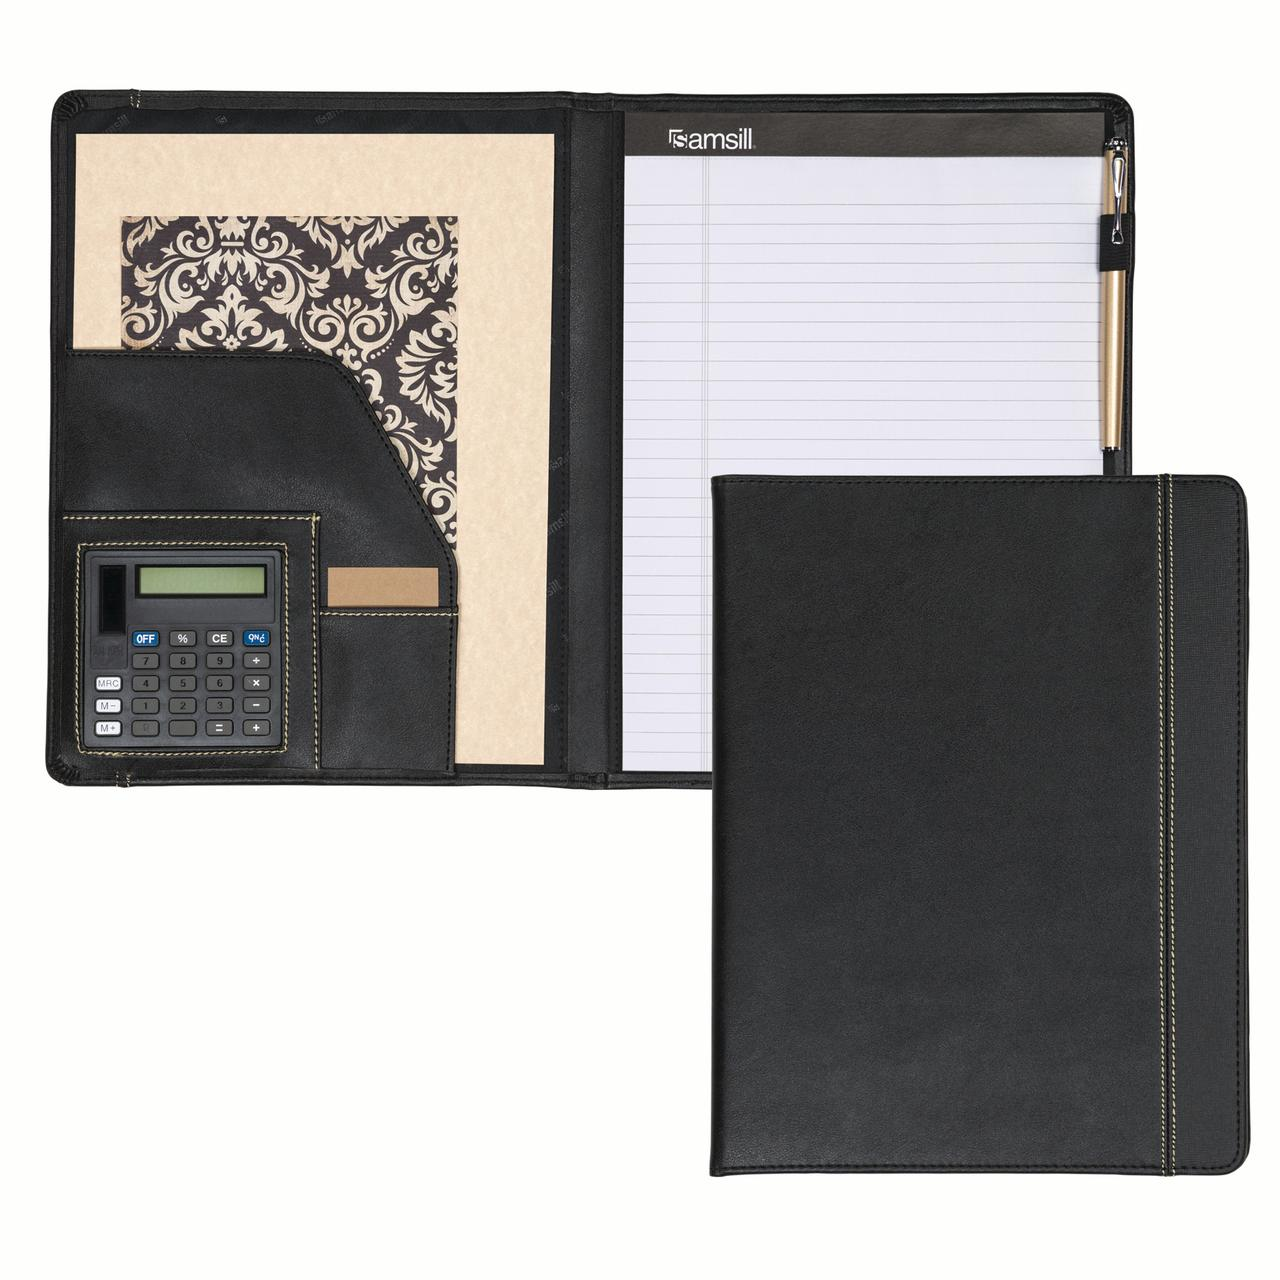 "Samsill Professional Slimline Padfolio with Calculator, 8.5""x11"" Writing Pad Included, Black"